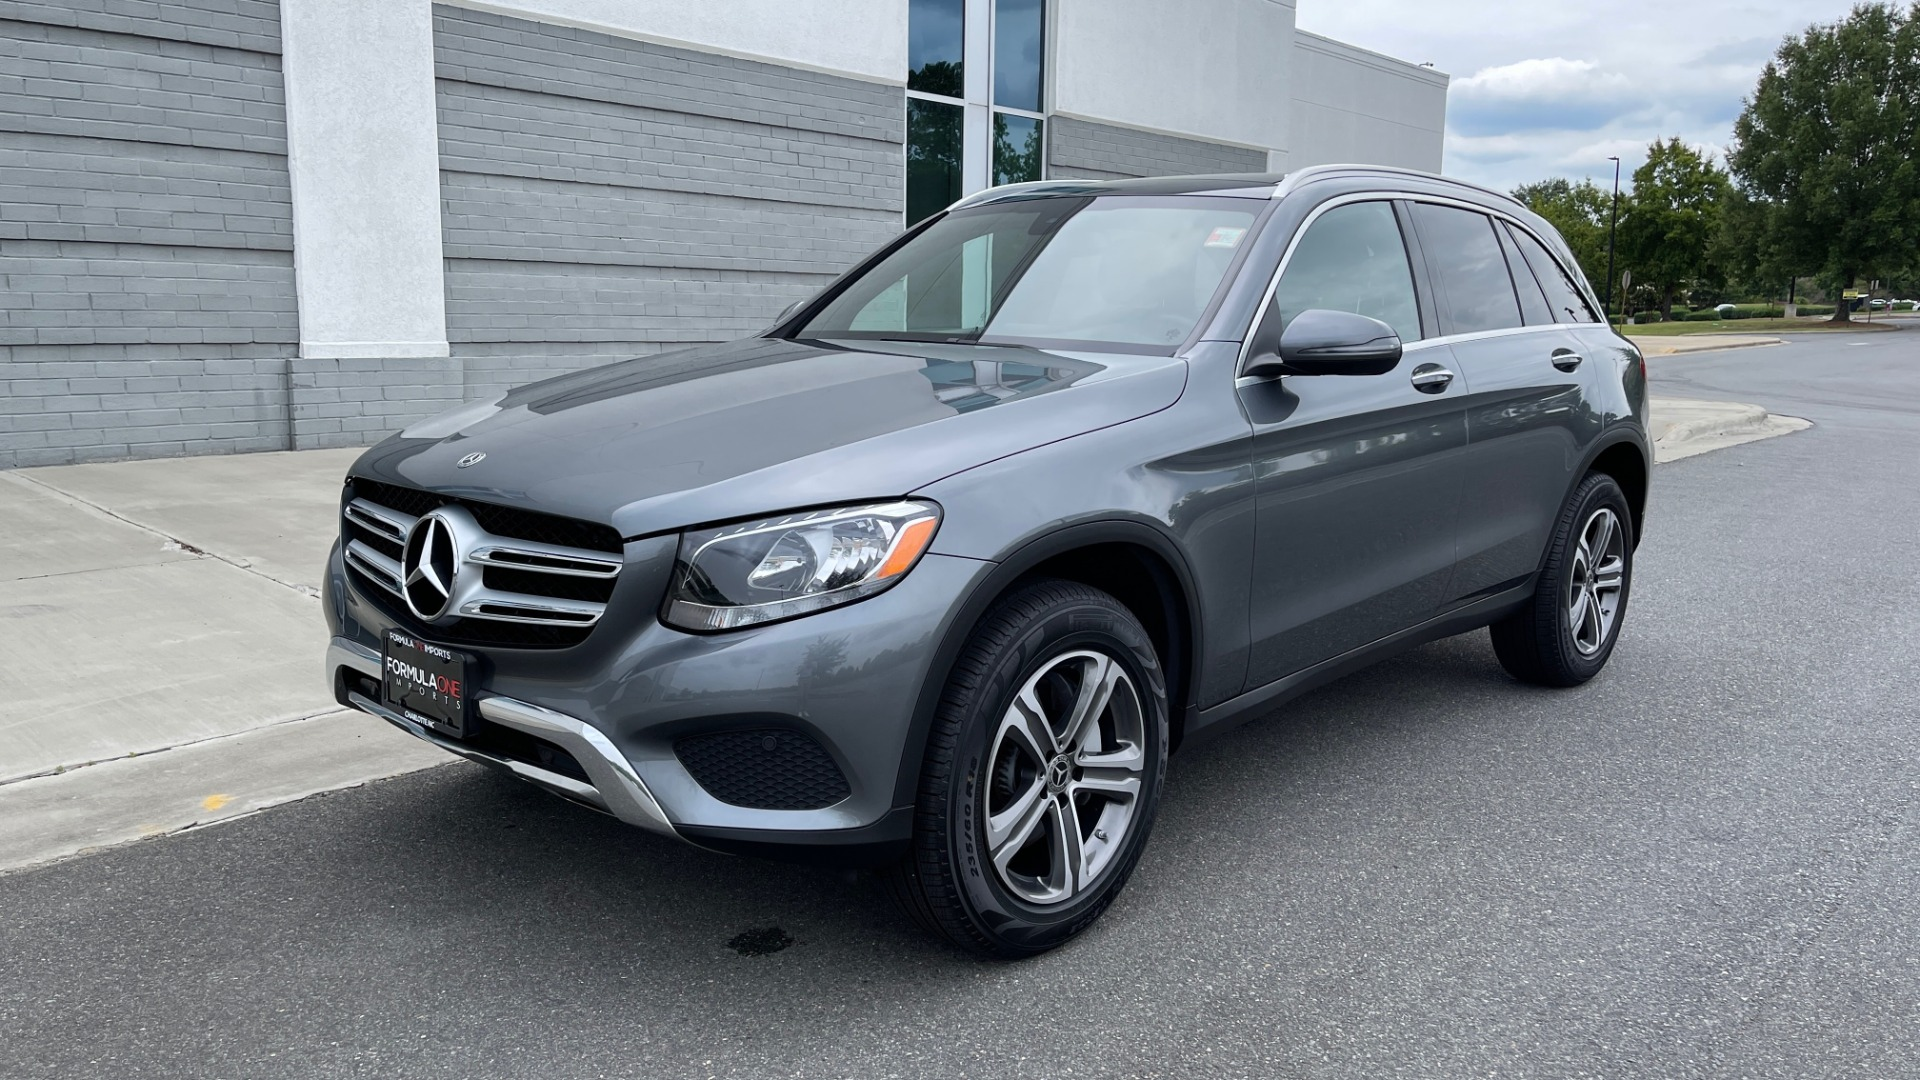 Used 2018 Mercedes-Benz GLC 300 4MATIC PREMIUM / PANO-ROOF / HTD STS / APPLE / REARVIEW for sale $34,295 at Formula Imports in Charlotte NC 28227 3